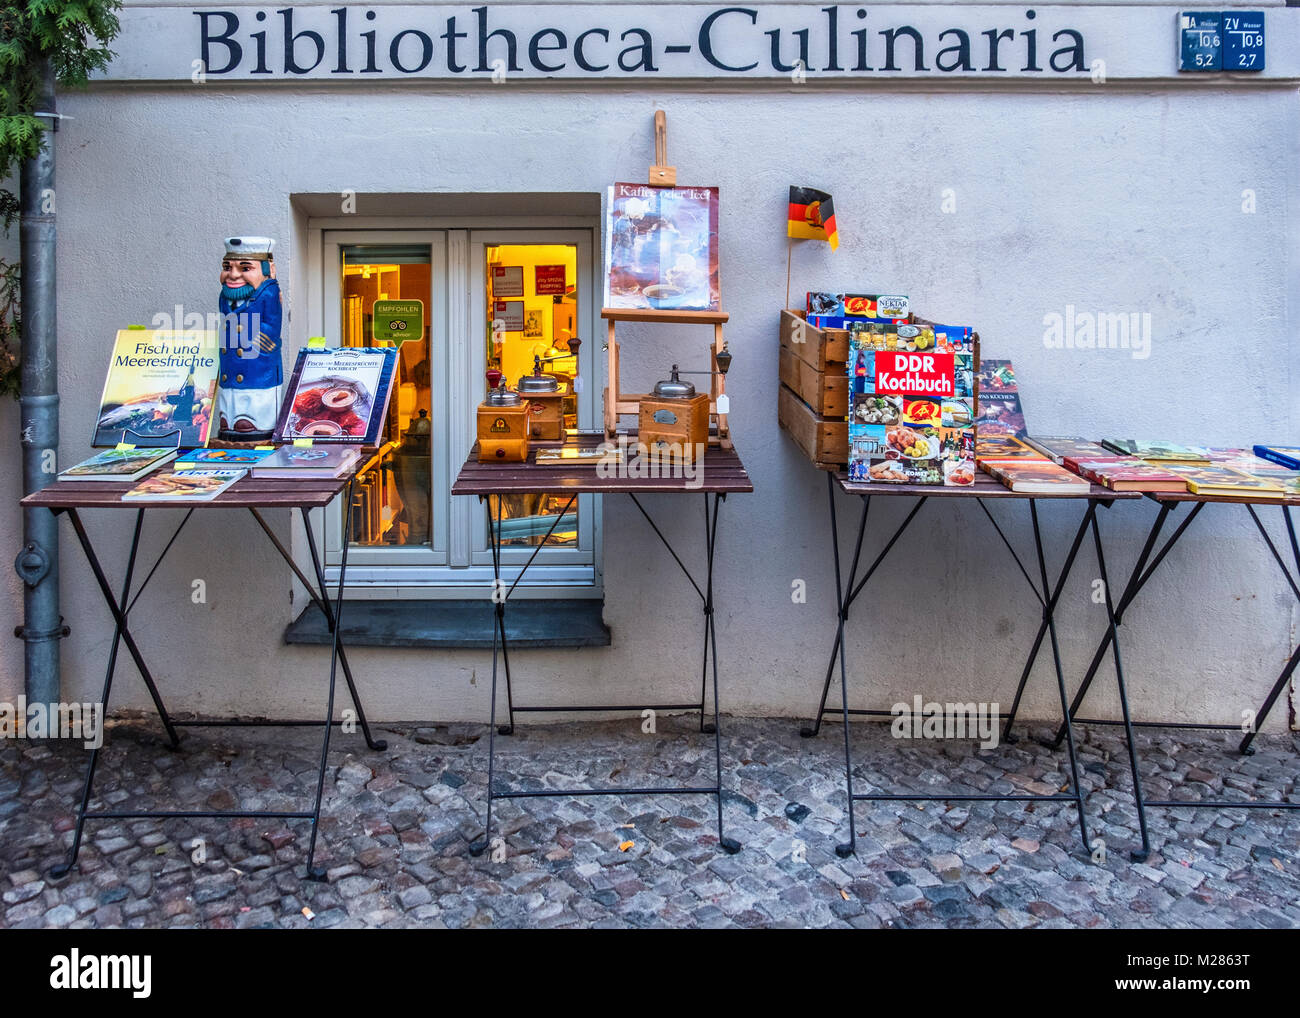 Kochbuch Antiquariat Bibliotheca-Culinaria, Shop sells Antiquarian,vintage & Second-hand cook books and cooking - Stock Image